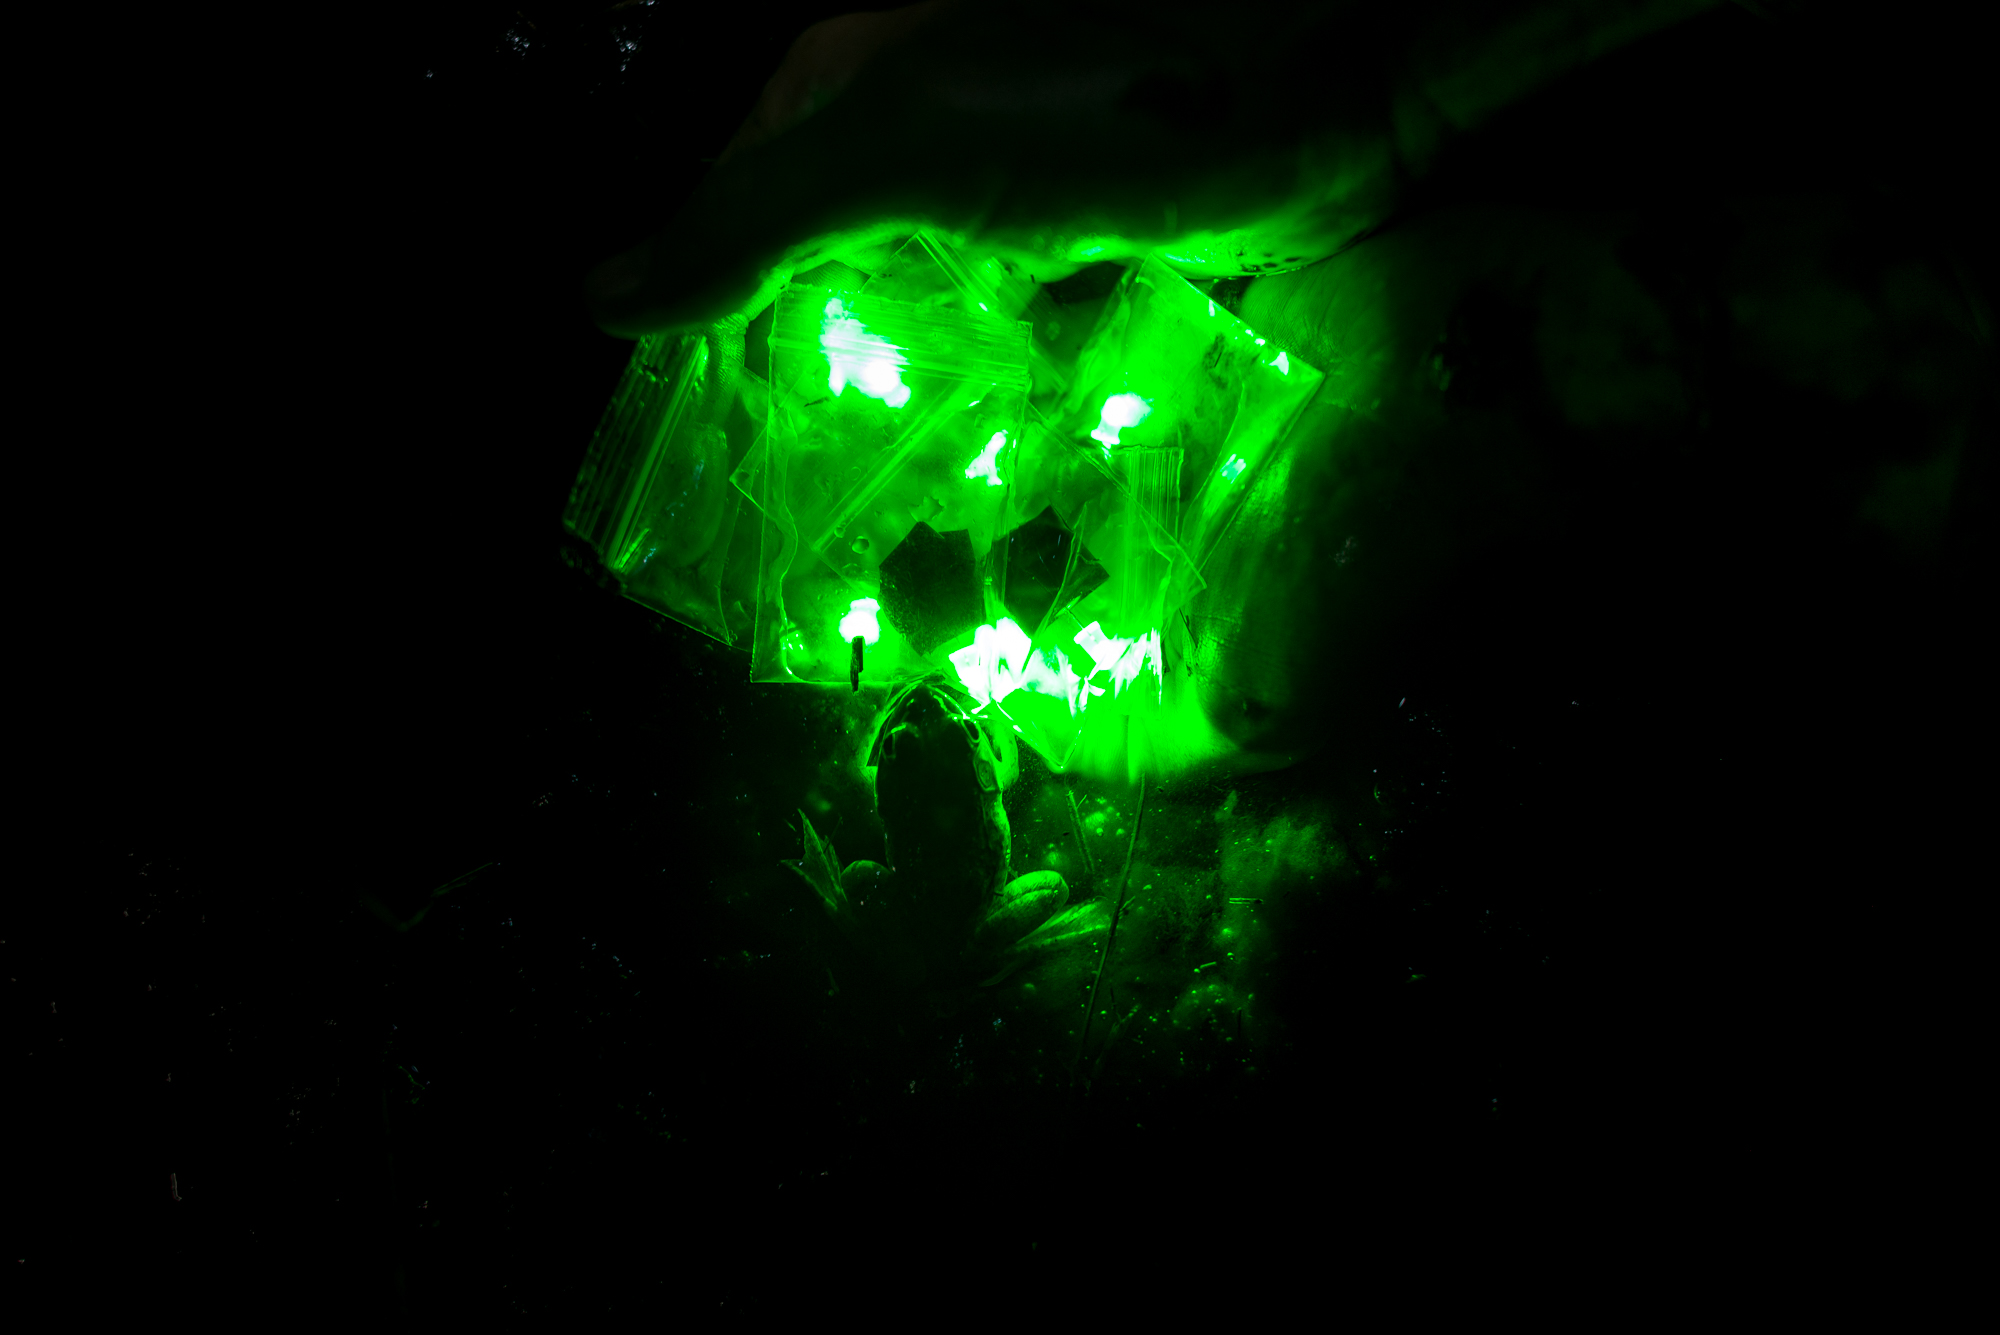 A frog glows green in the light of the LEDs.